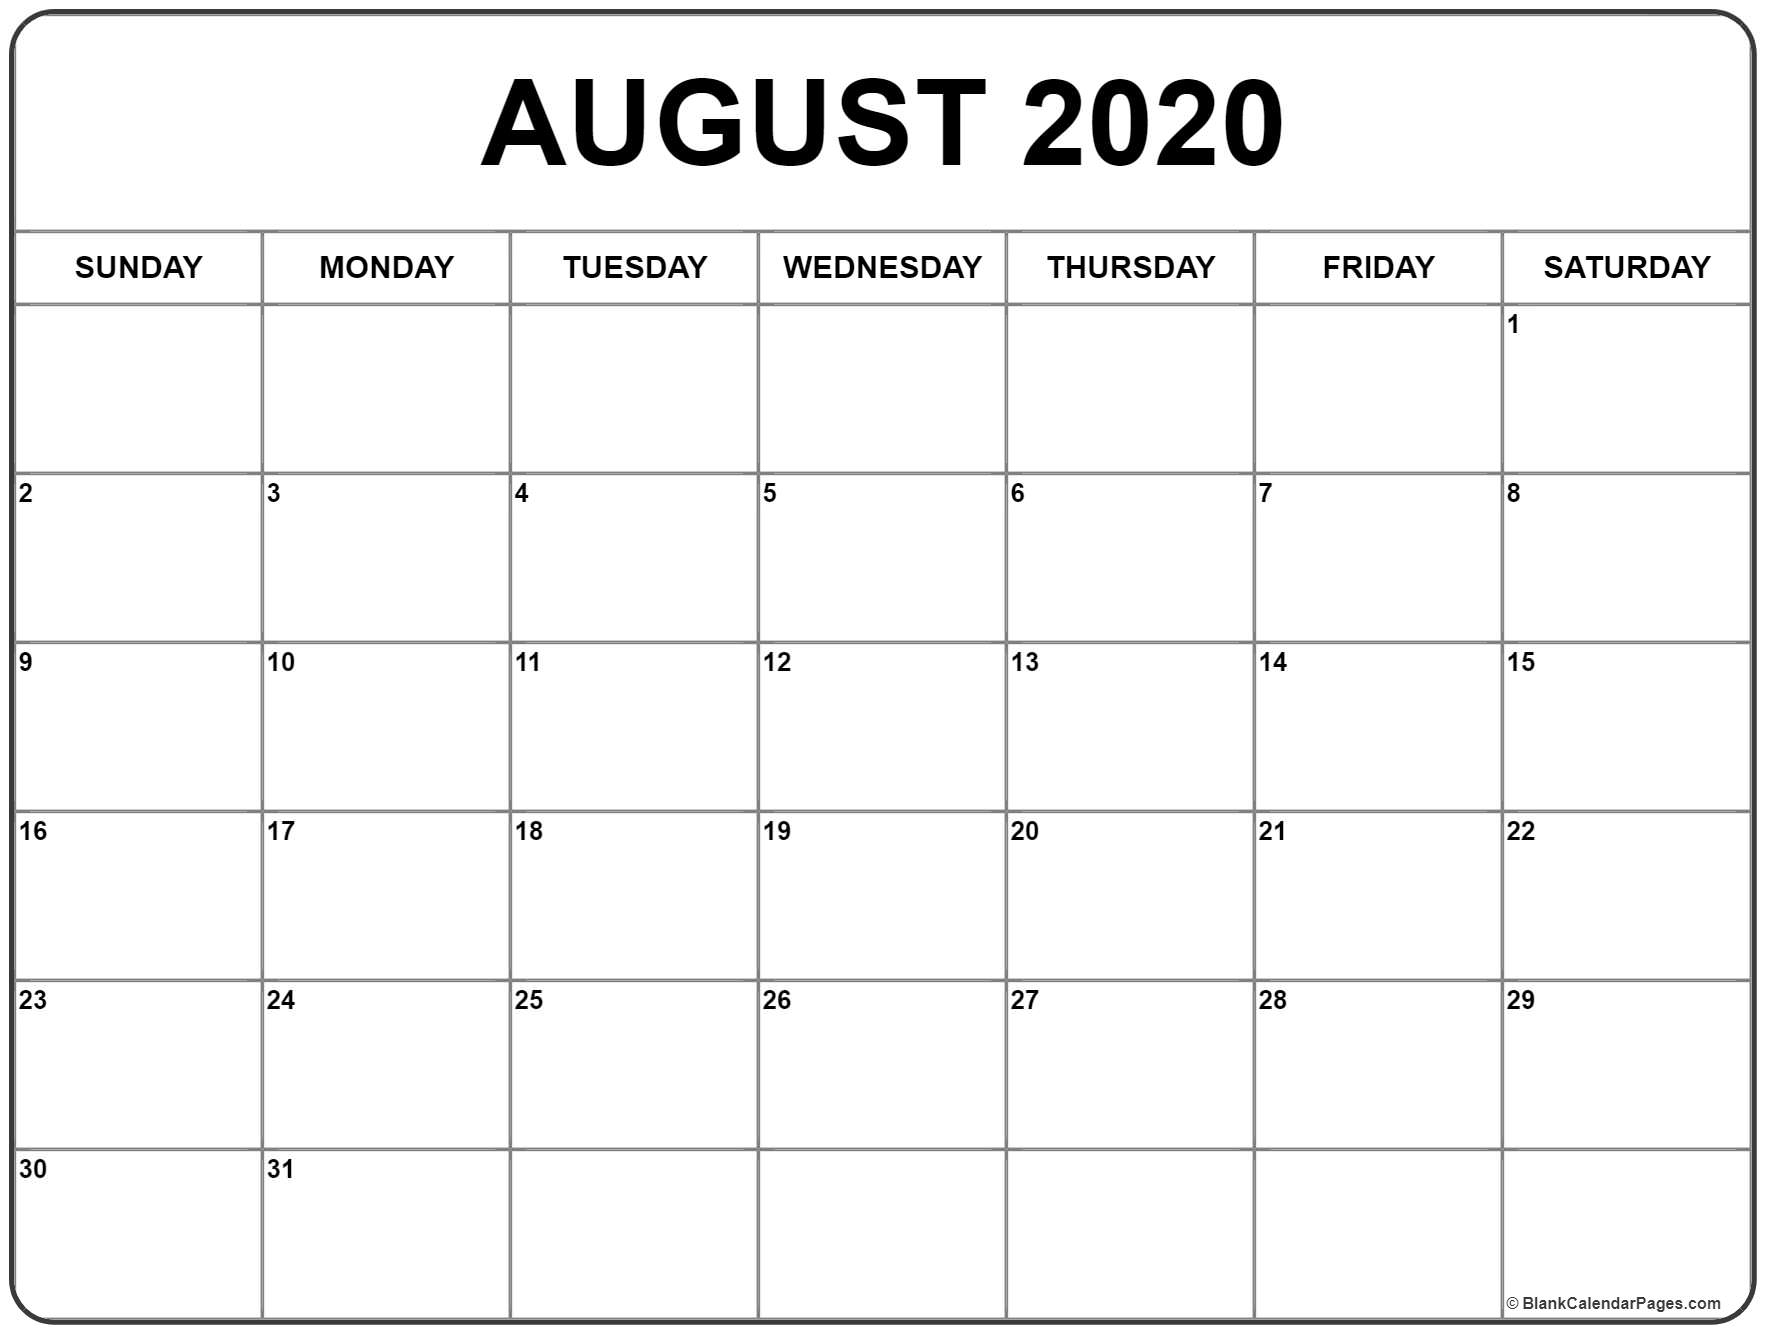 August 2020 Calendar | Free Printable Monthly Calendars in 2020Printable Monday Through Sunday Calendars